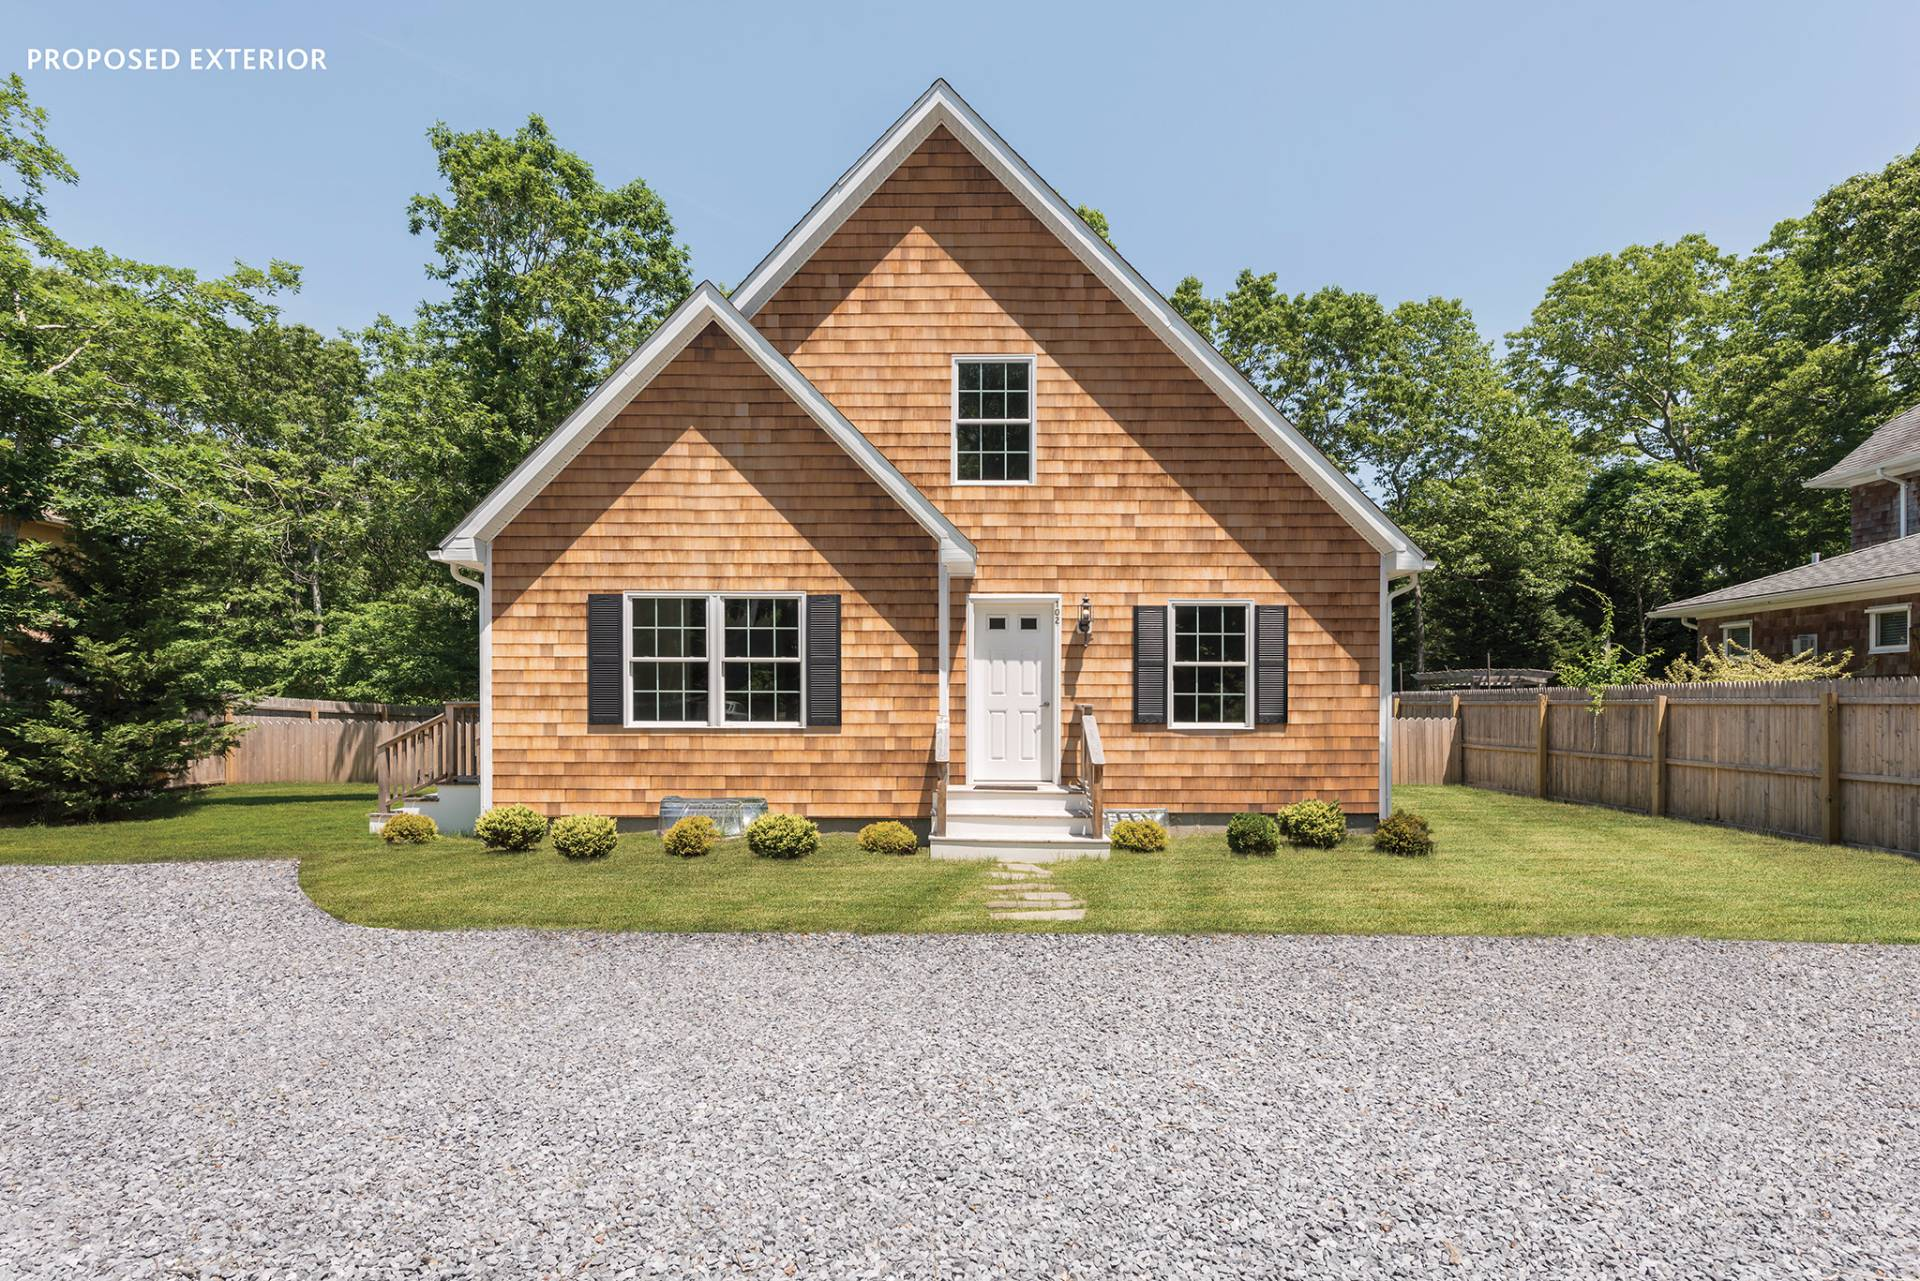 Single Family Home for Sale at Brand New Construction 102 Cedar Drive, East Hampton, New York